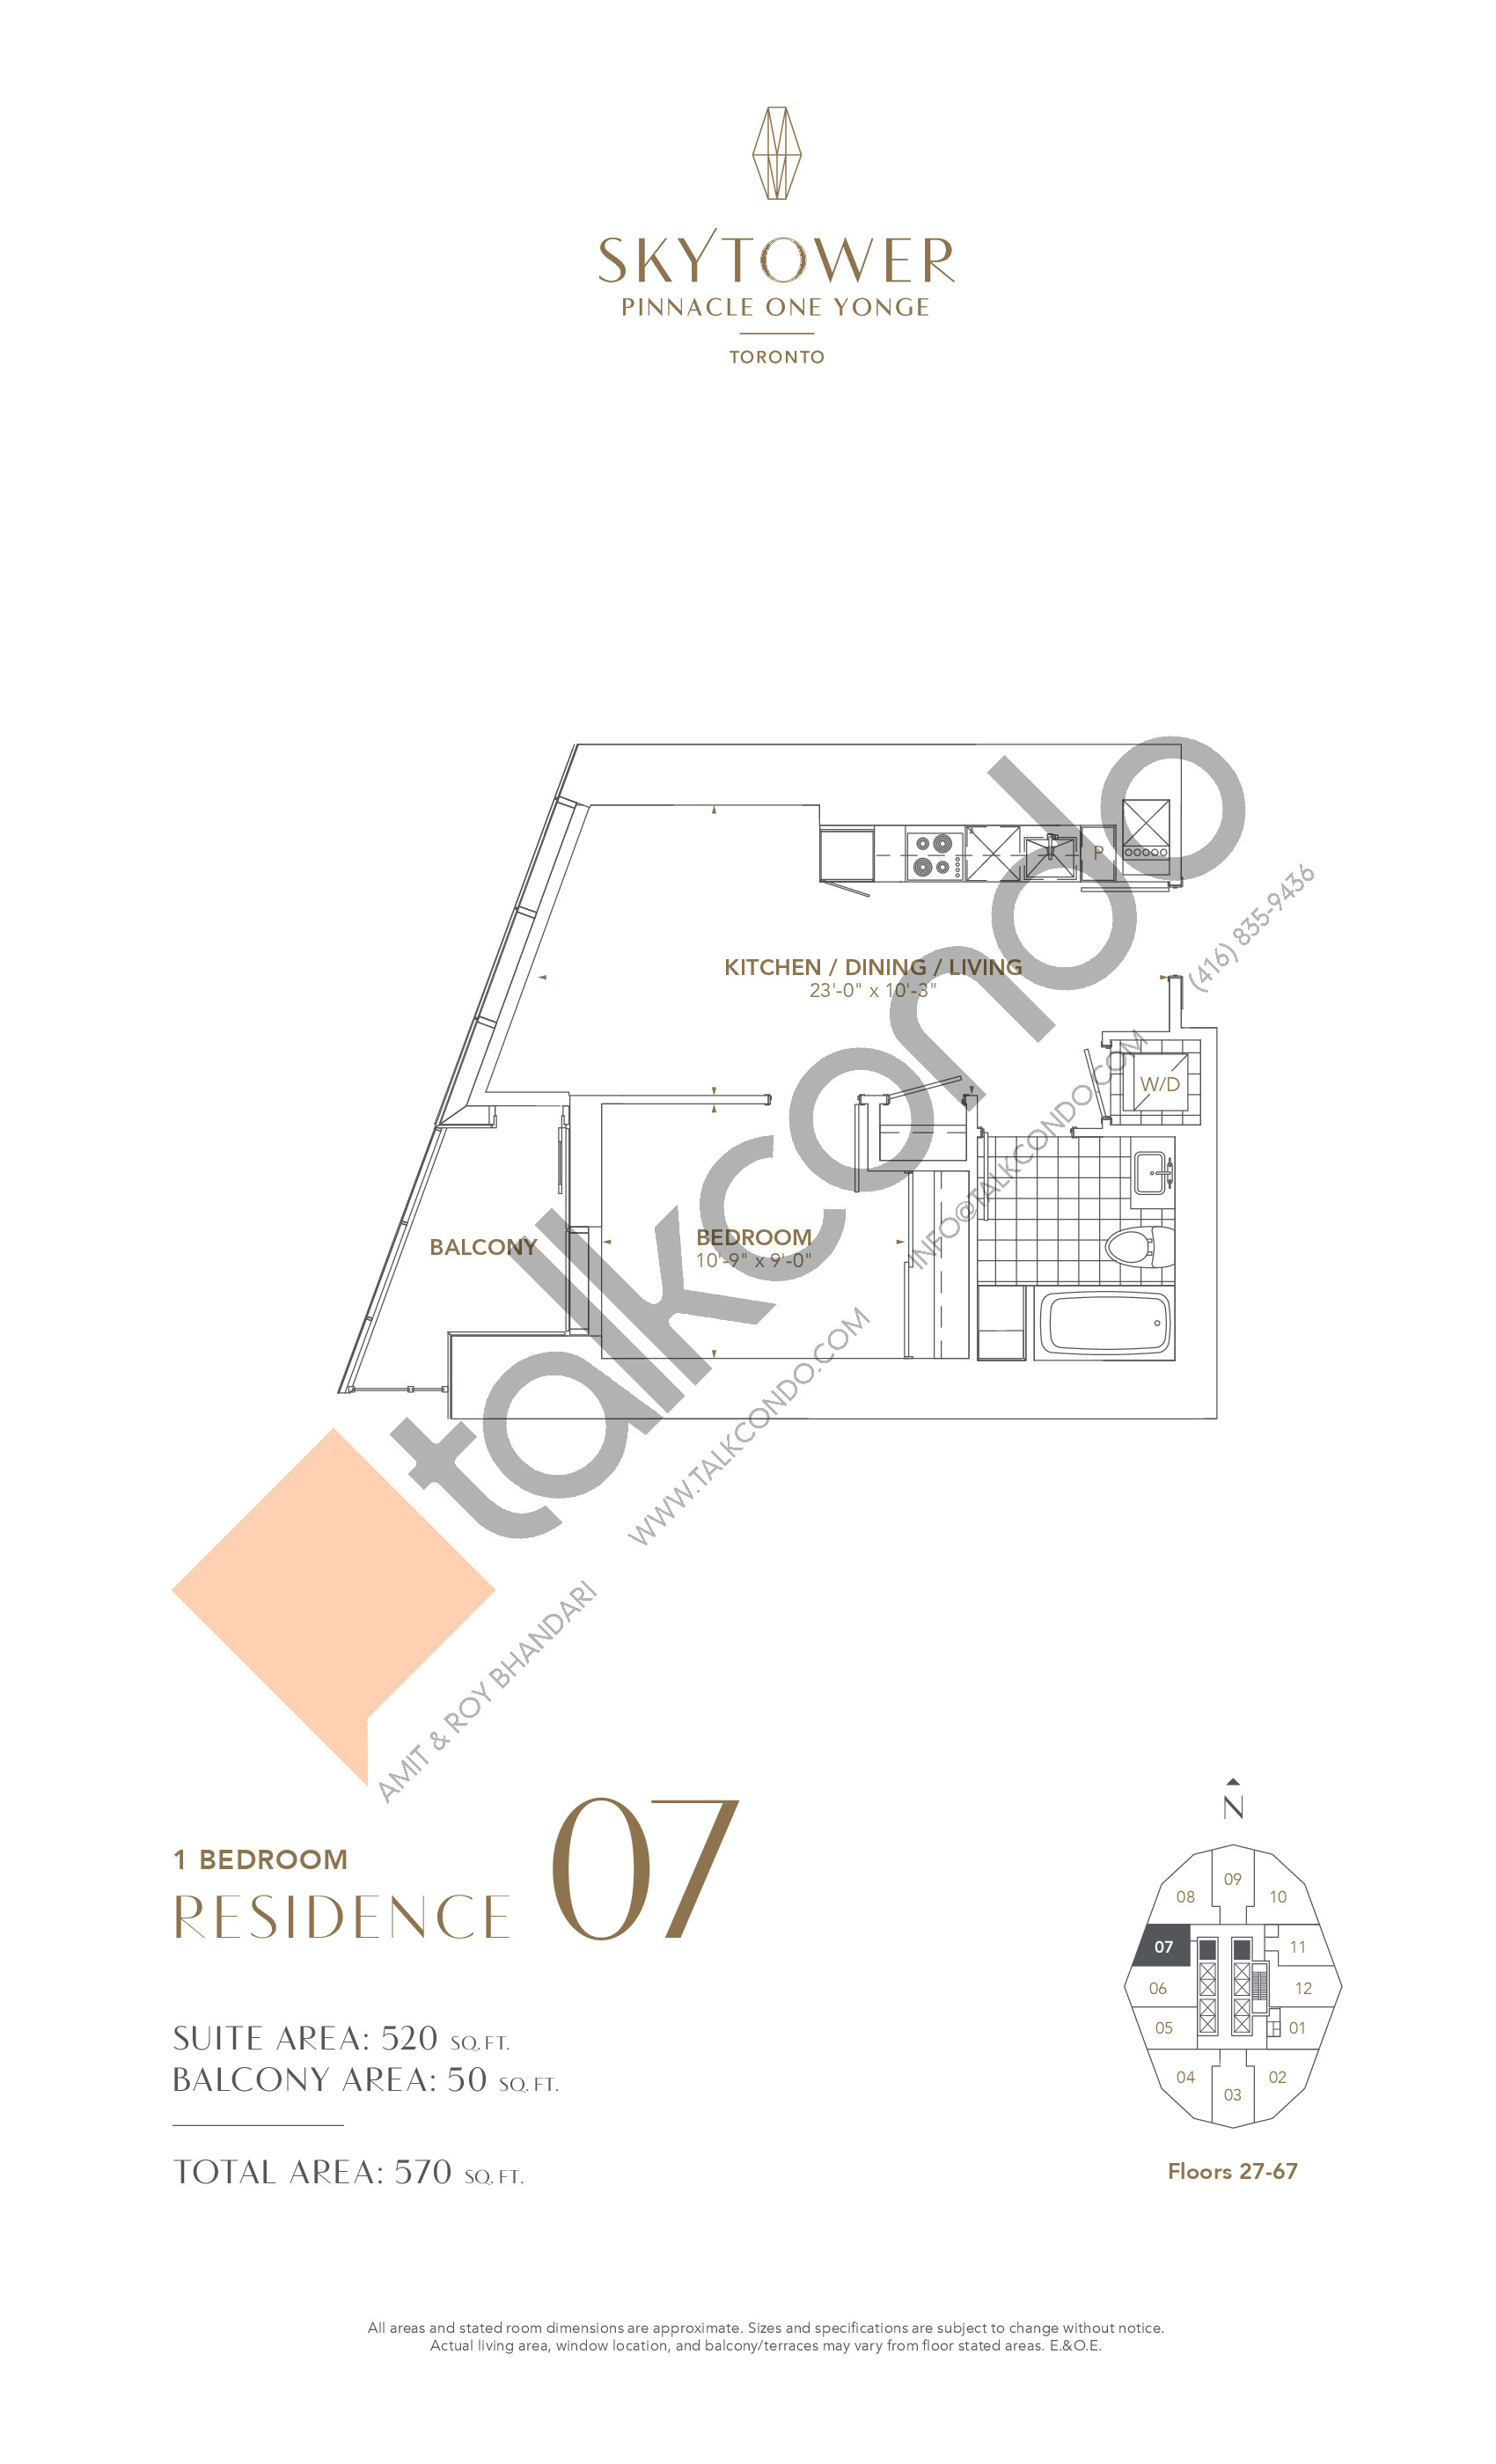 Residence 07 Floor Plan at SkyTower at Pinnacle One Yonge - 520 sq.ft